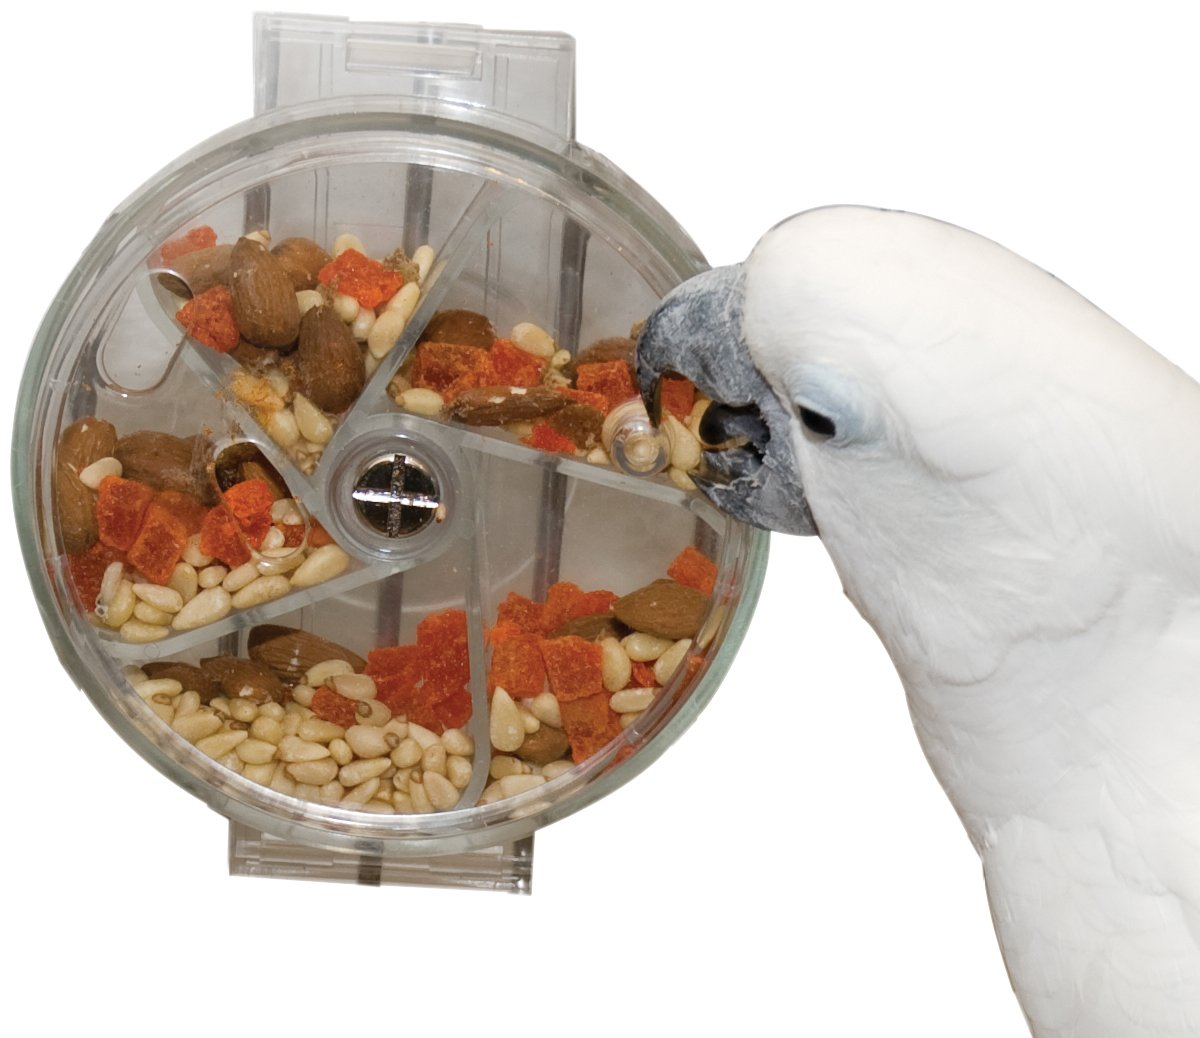 Paradise Toys Bird Creative Foraging System Wheel, Spins with Food Inside, 6'' Diameter by Paradise Toys